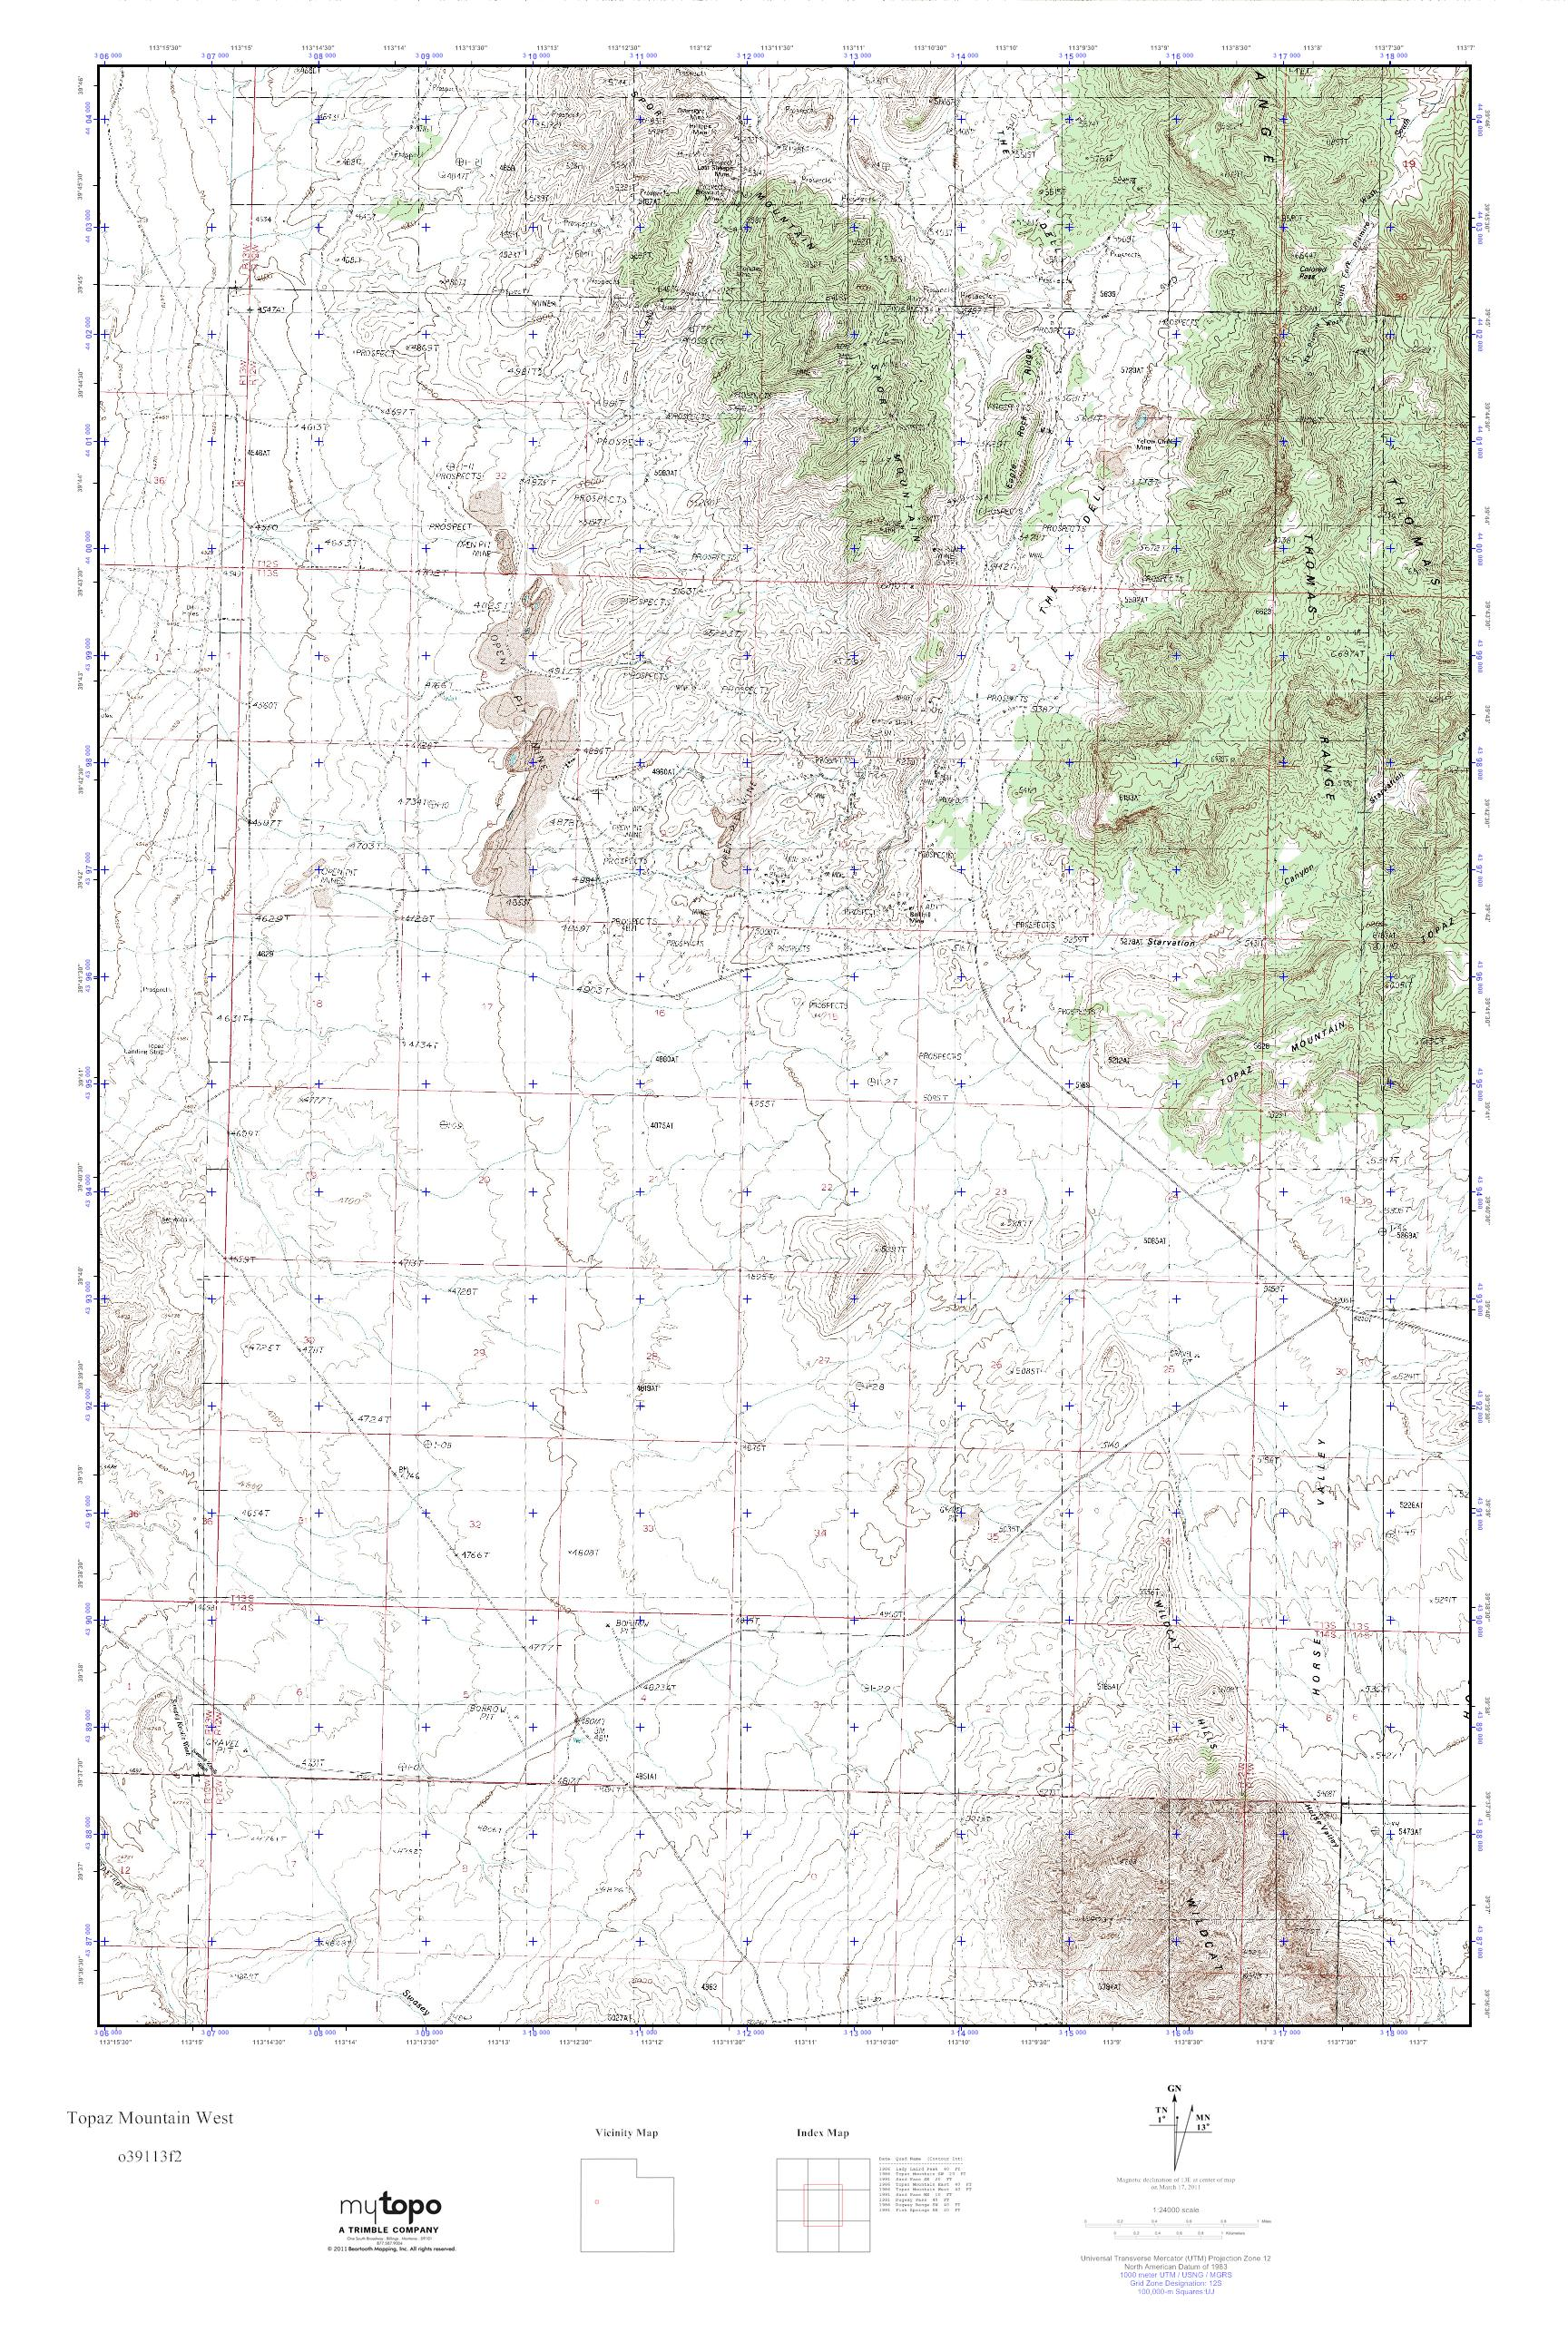 Topaz Mountain Utah Map.Mytopo Topaz Mountain West Utah Usgs Quad Topo Map